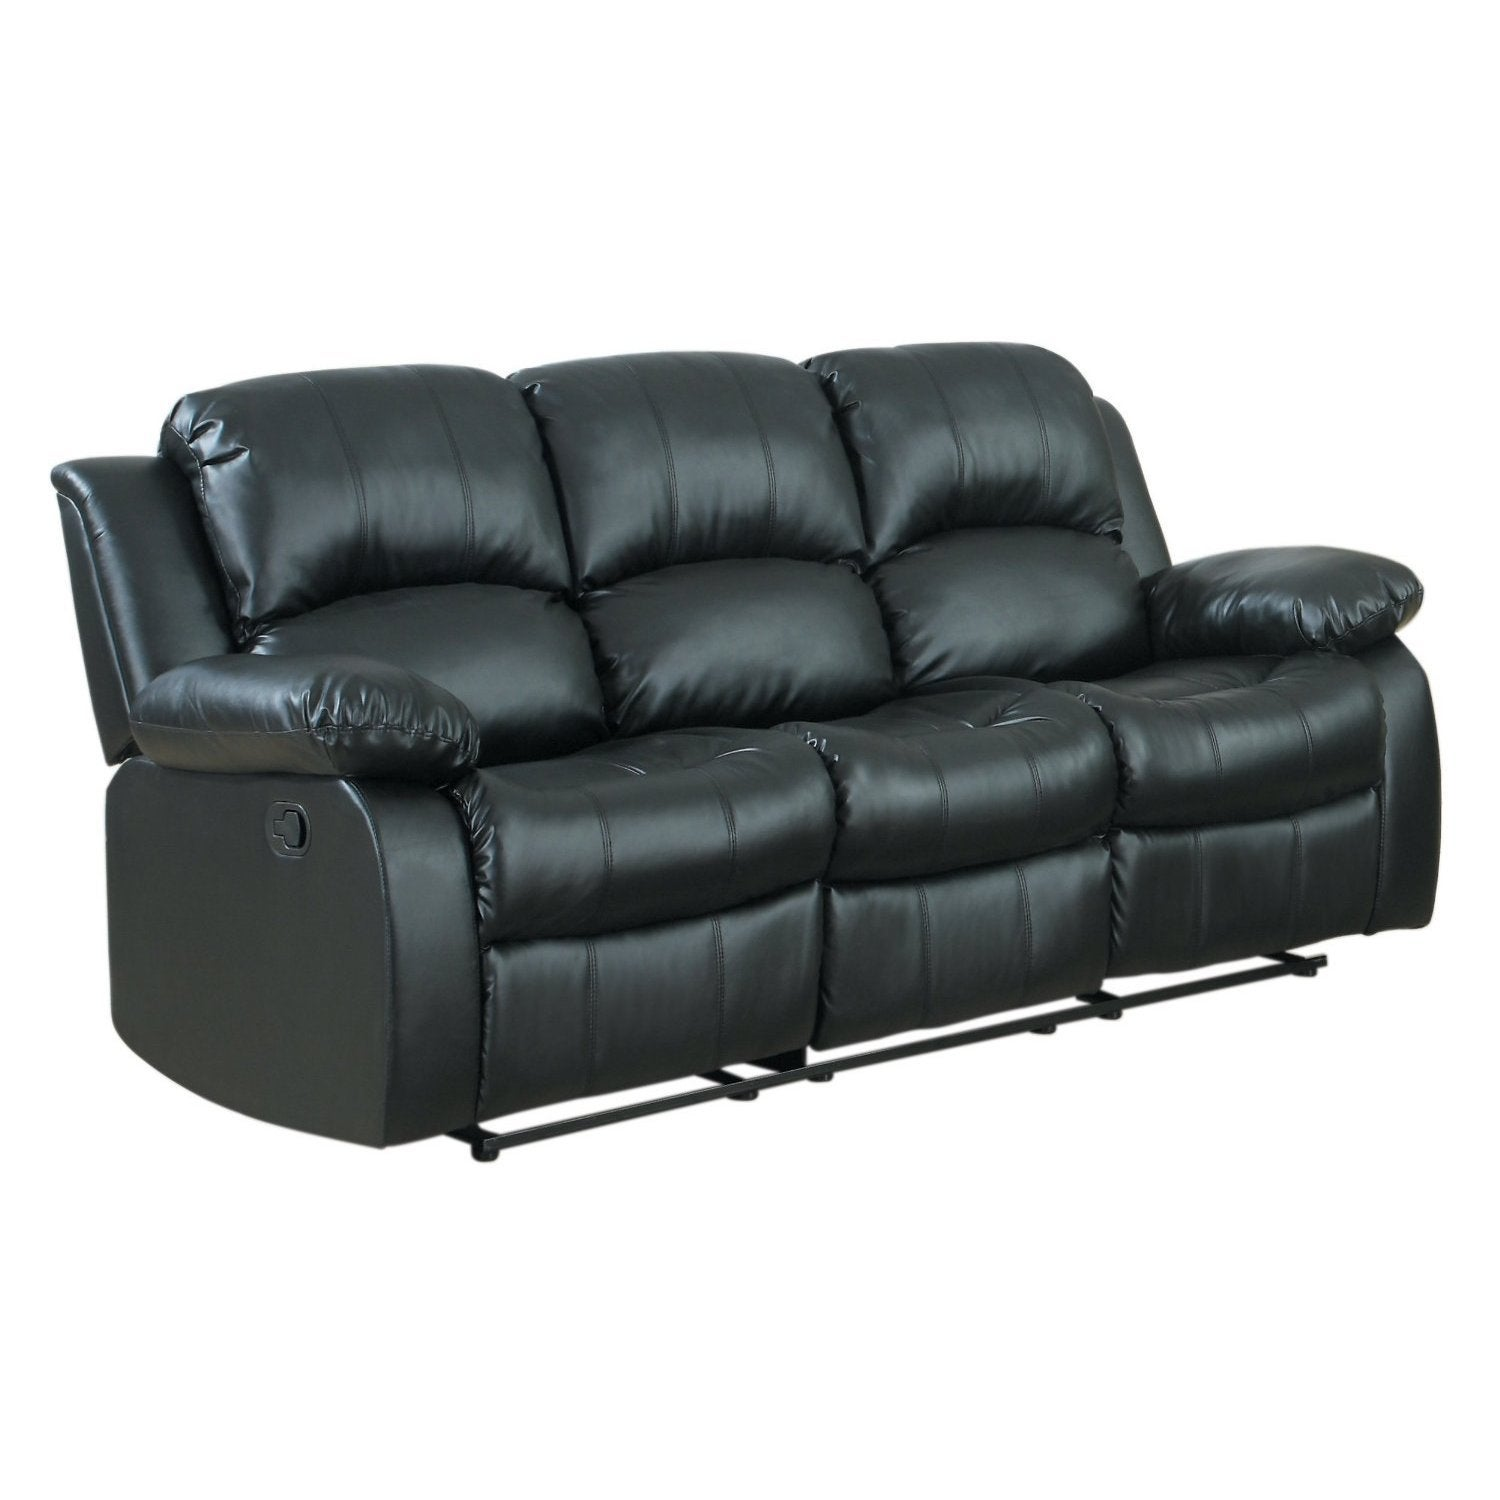 3 Seat Double Recliner Bonded Leather Sofa Free Shipping Today 10324295